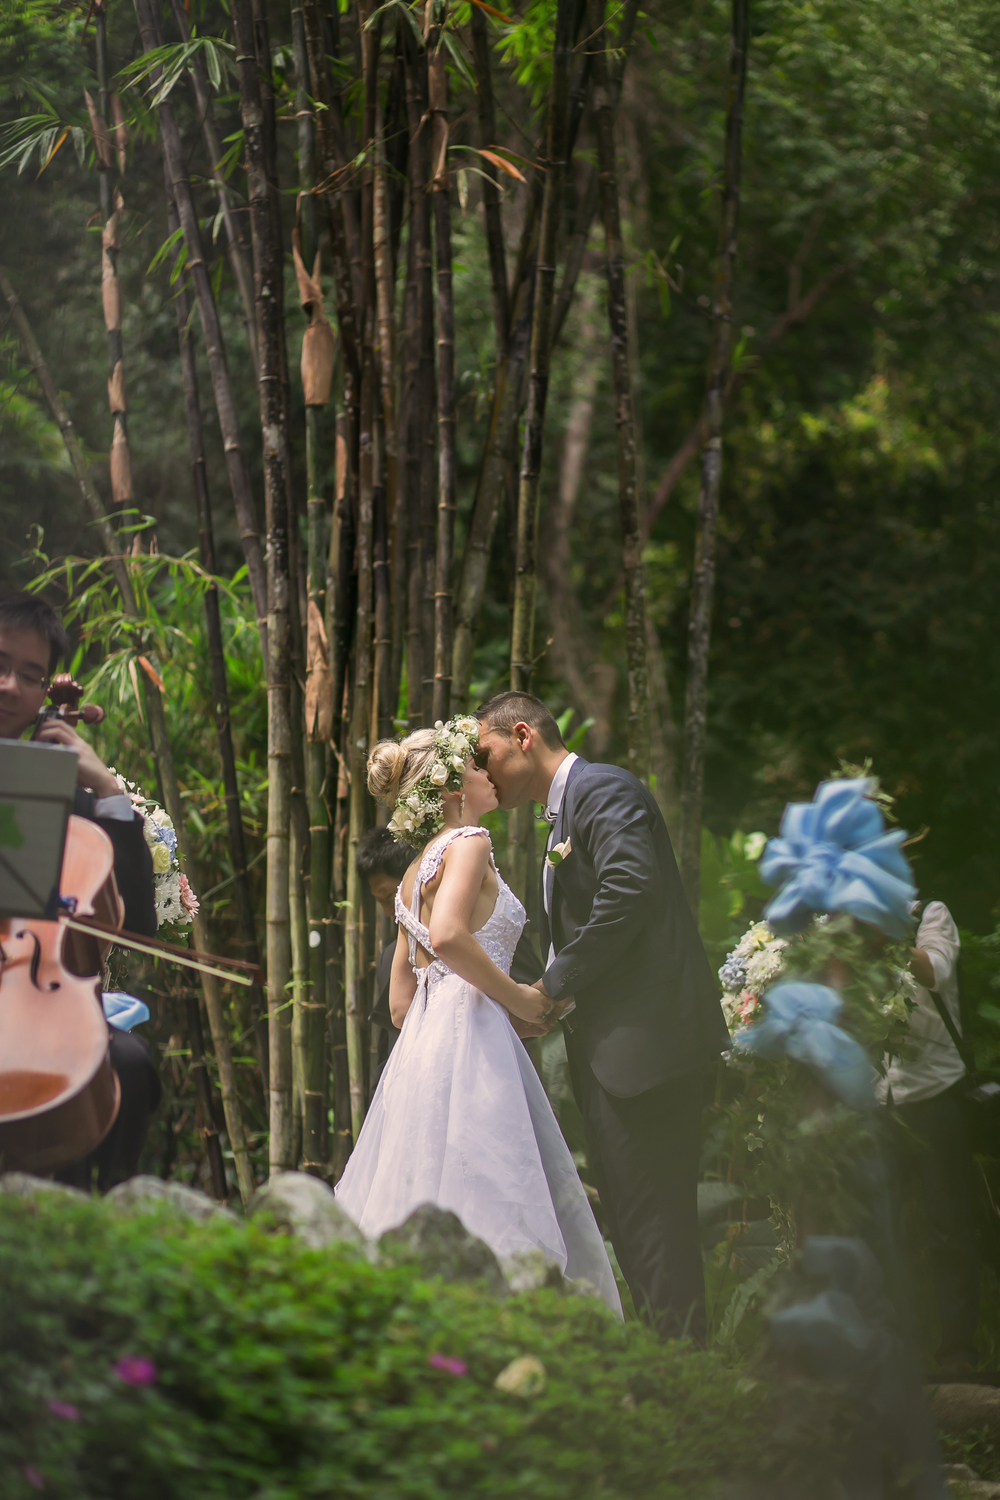 One of the very many spectacular weddings held at Tropical Spice Garden - what a romantic spot! (Picture courtesy of Tropical Spice Garden)